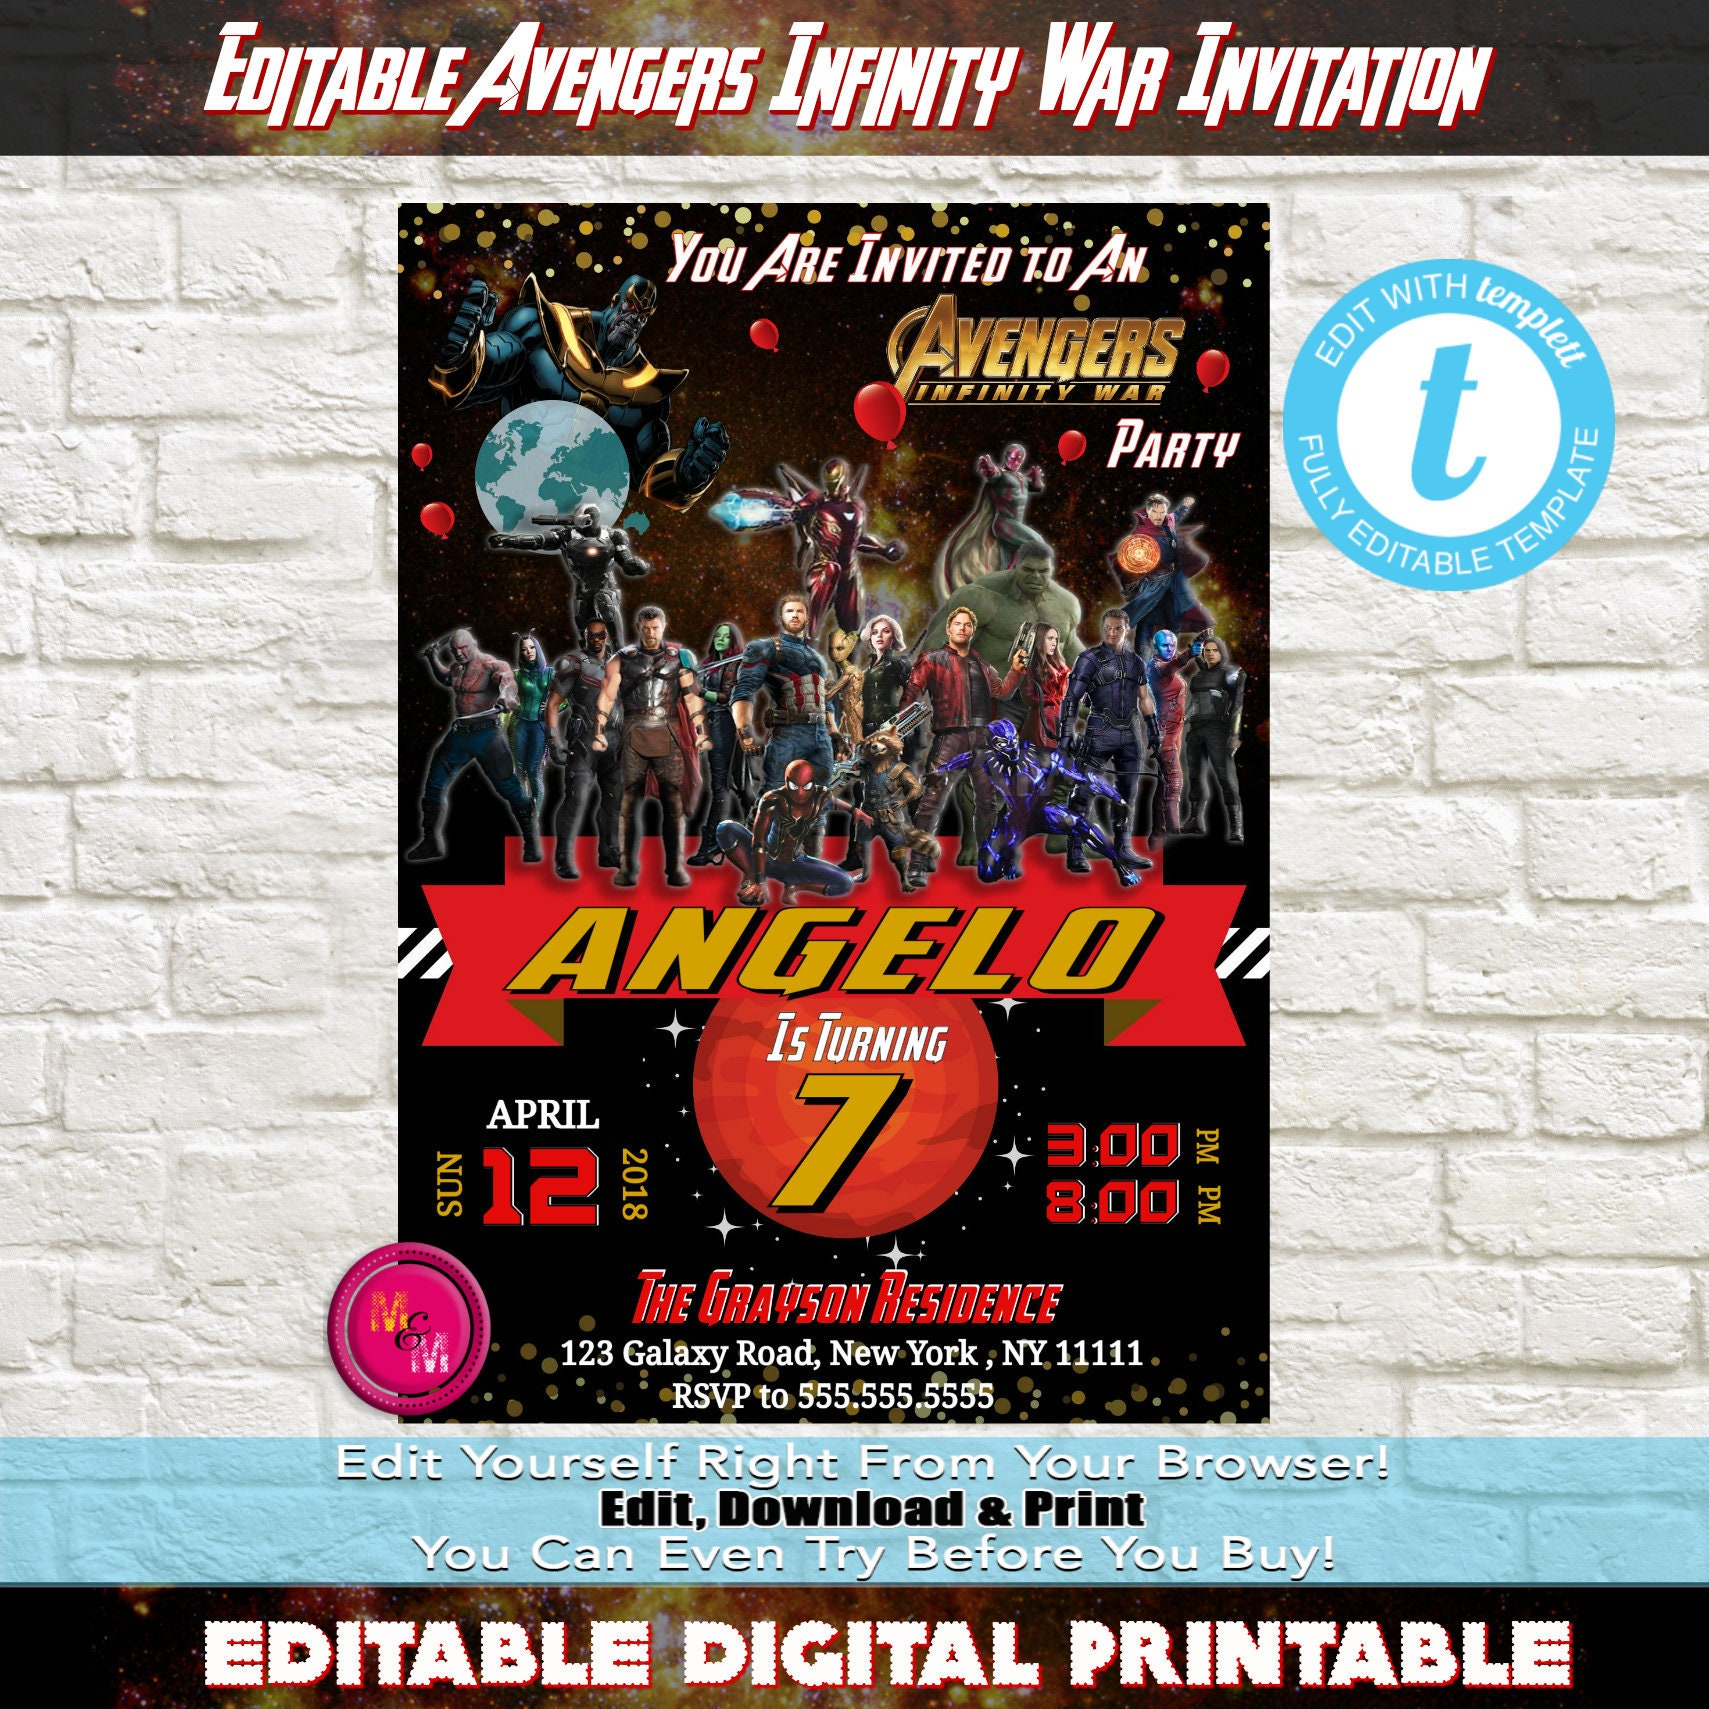 Editable Avengers Infinity War Birthday Party Invitation